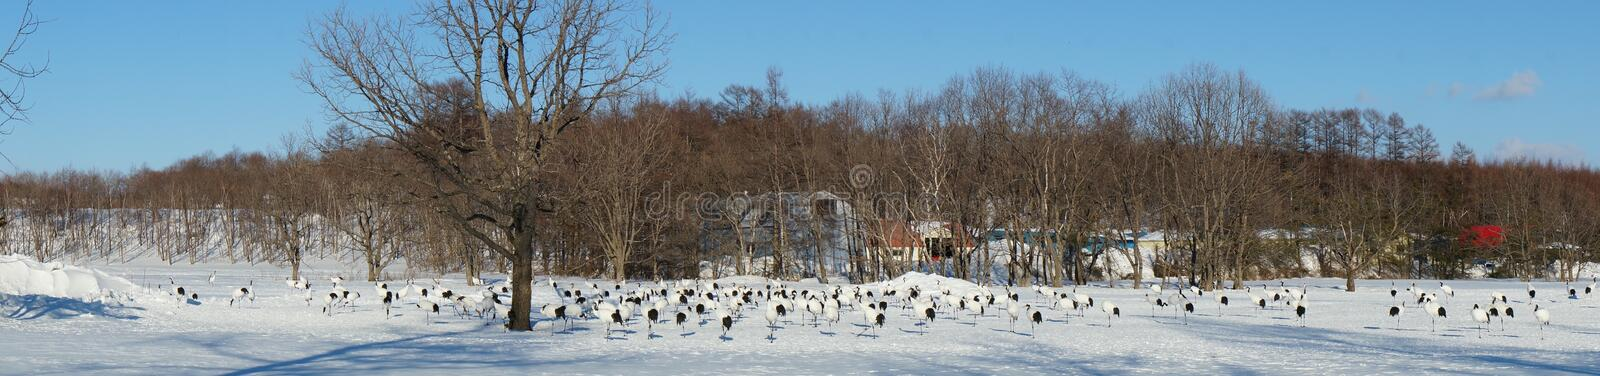 Sweeping View of Cranes stock photography